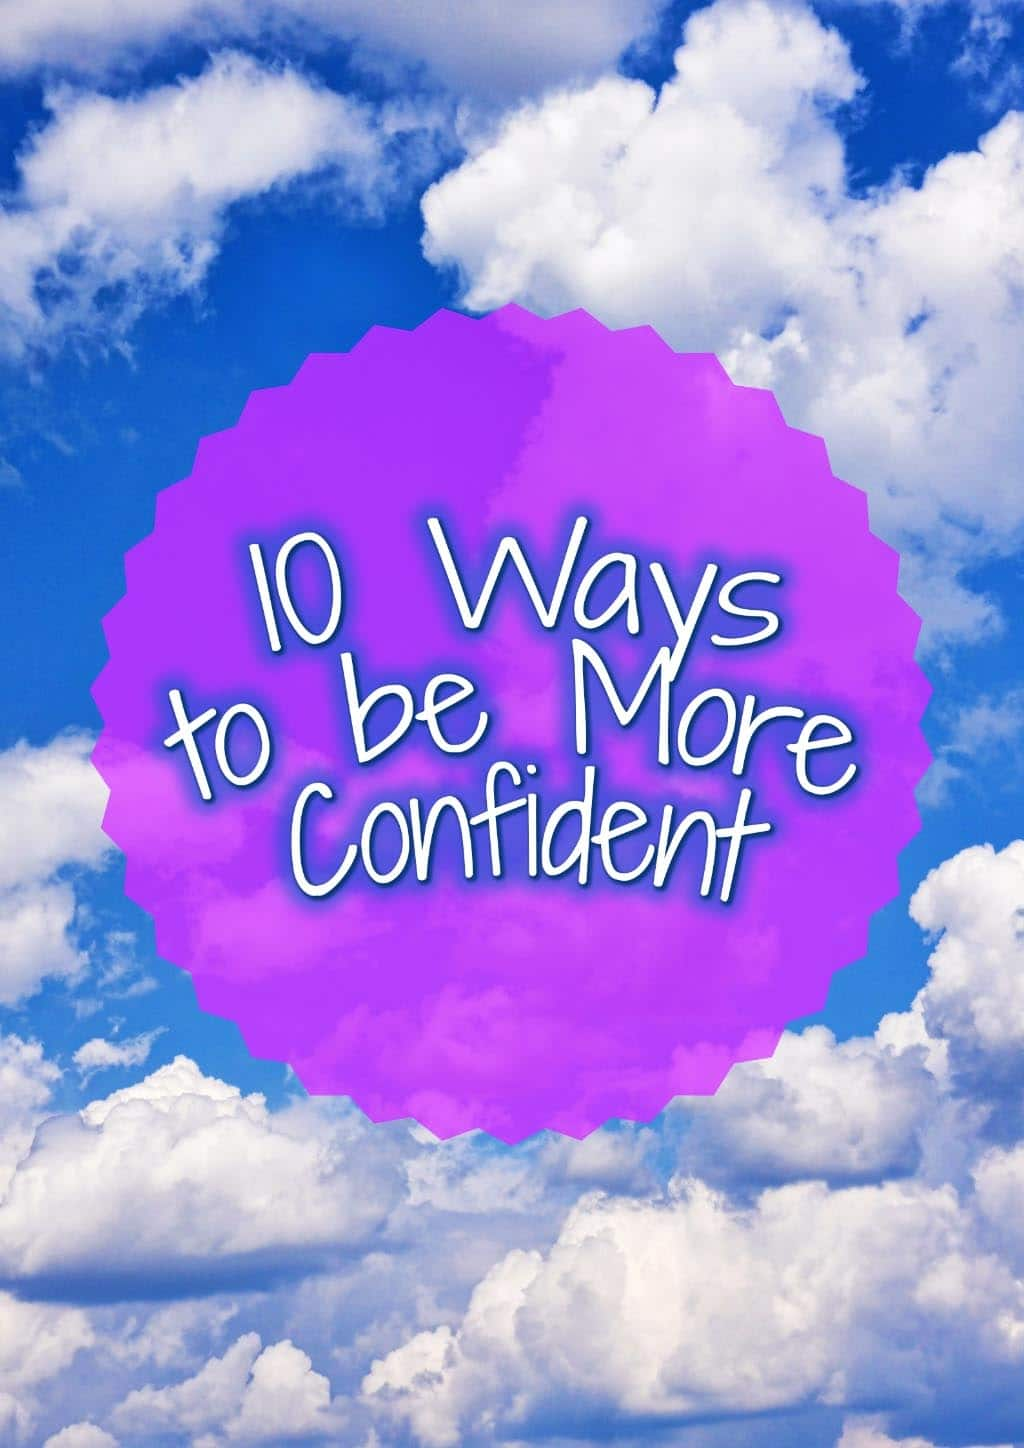 10 Ways To Be More Confident